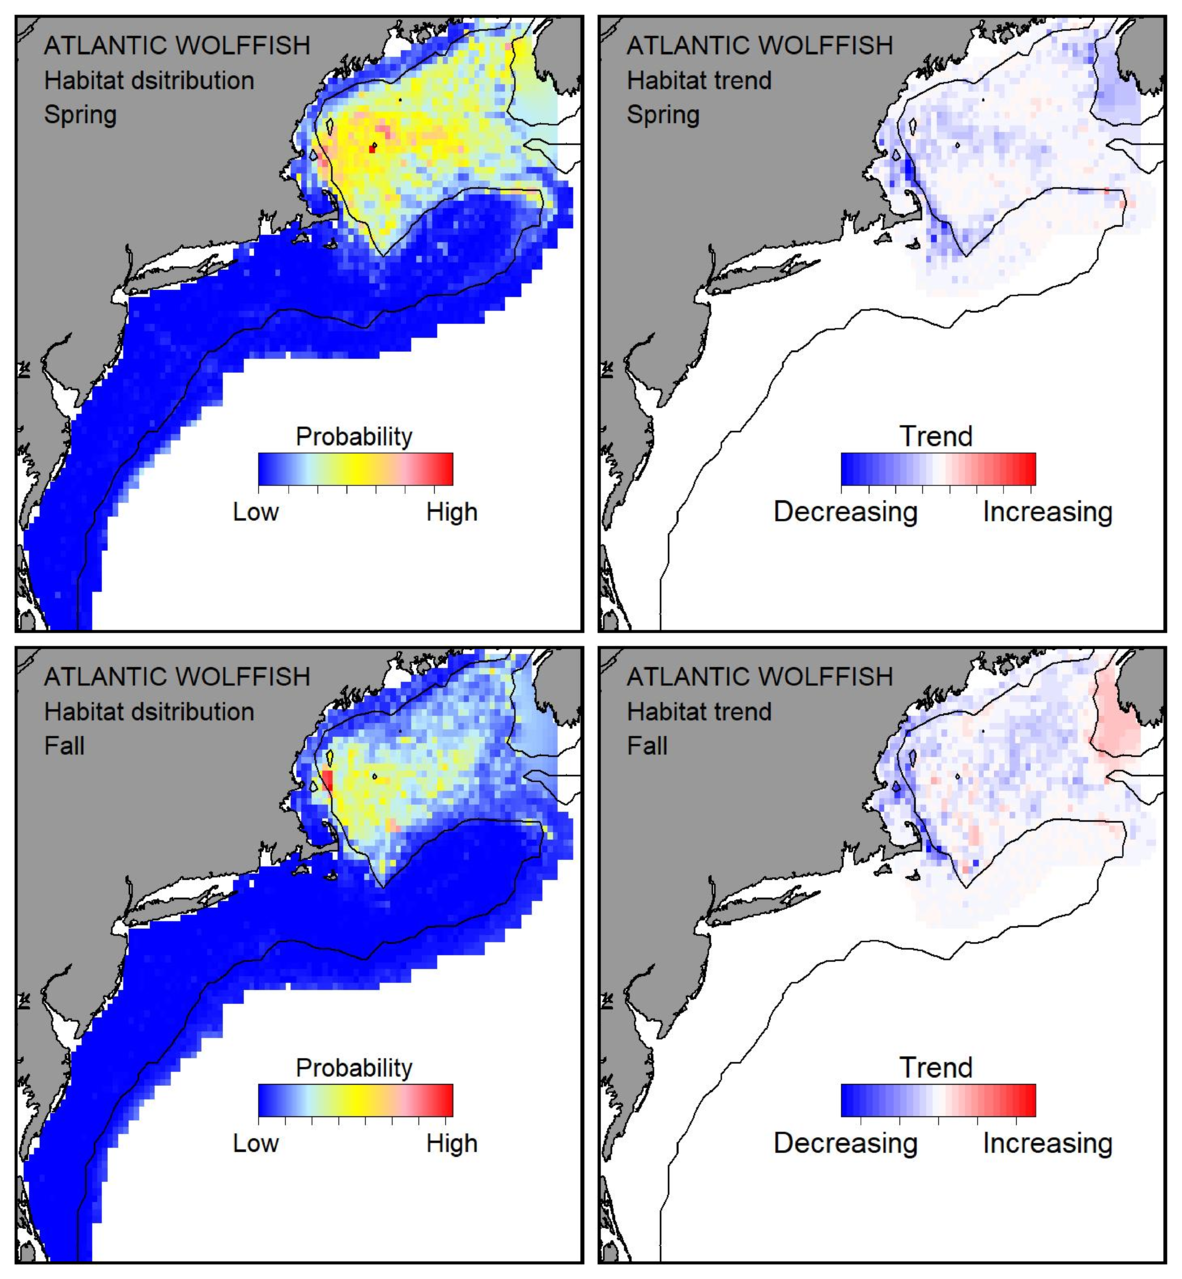 Probable habitat distribution for Atlantic wolffish showing the highest concentration and increasing trend in the Gulf of Maine during the spring. Bottom row: Probable habitat distribution for Atlantic wolffish showing the highest concentration and increasing trend in the Gulf of Maine during the fall.